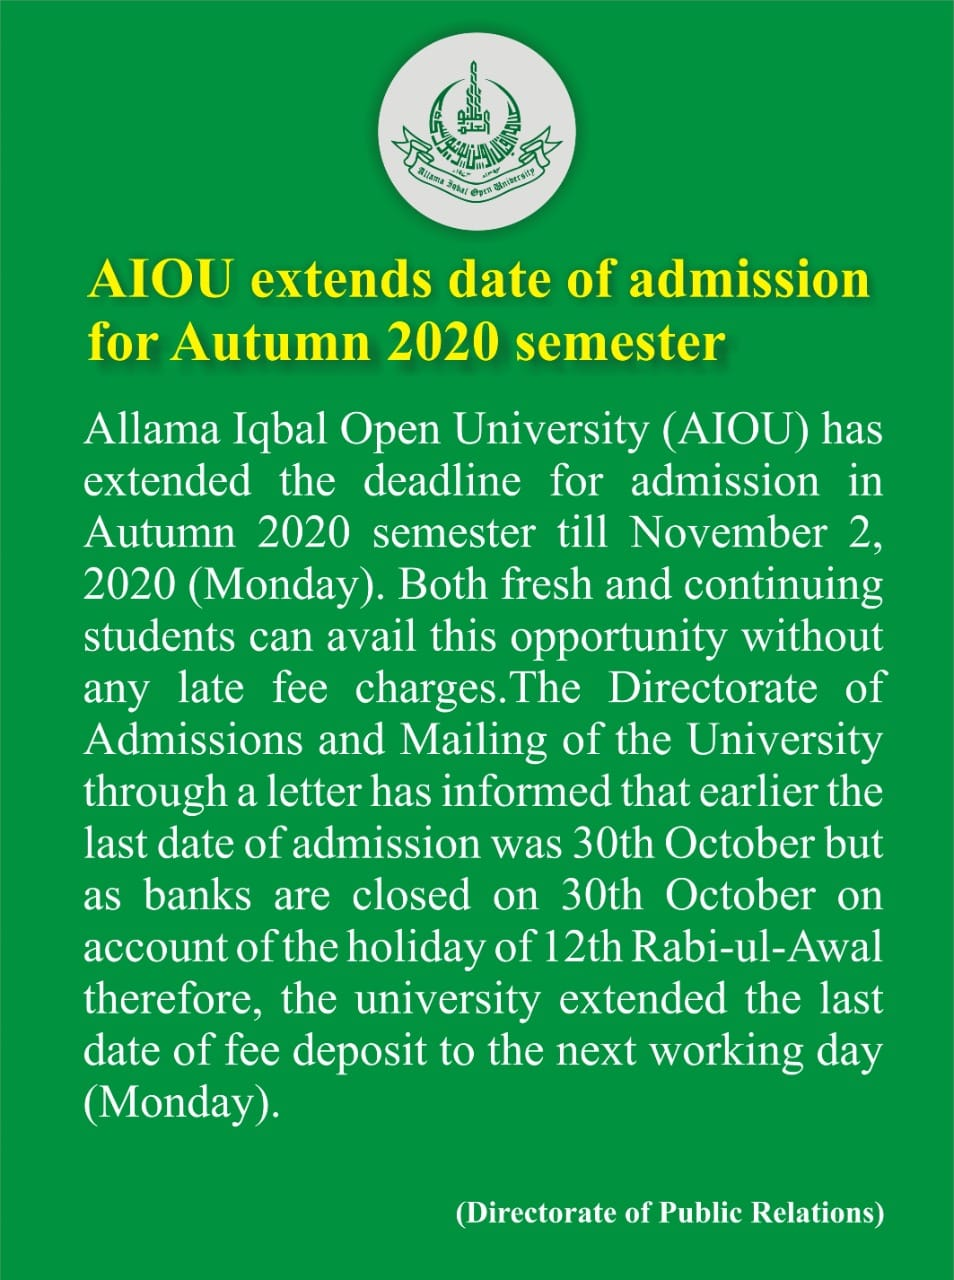 AIOU Extends date of admission for autumn 2020 semester